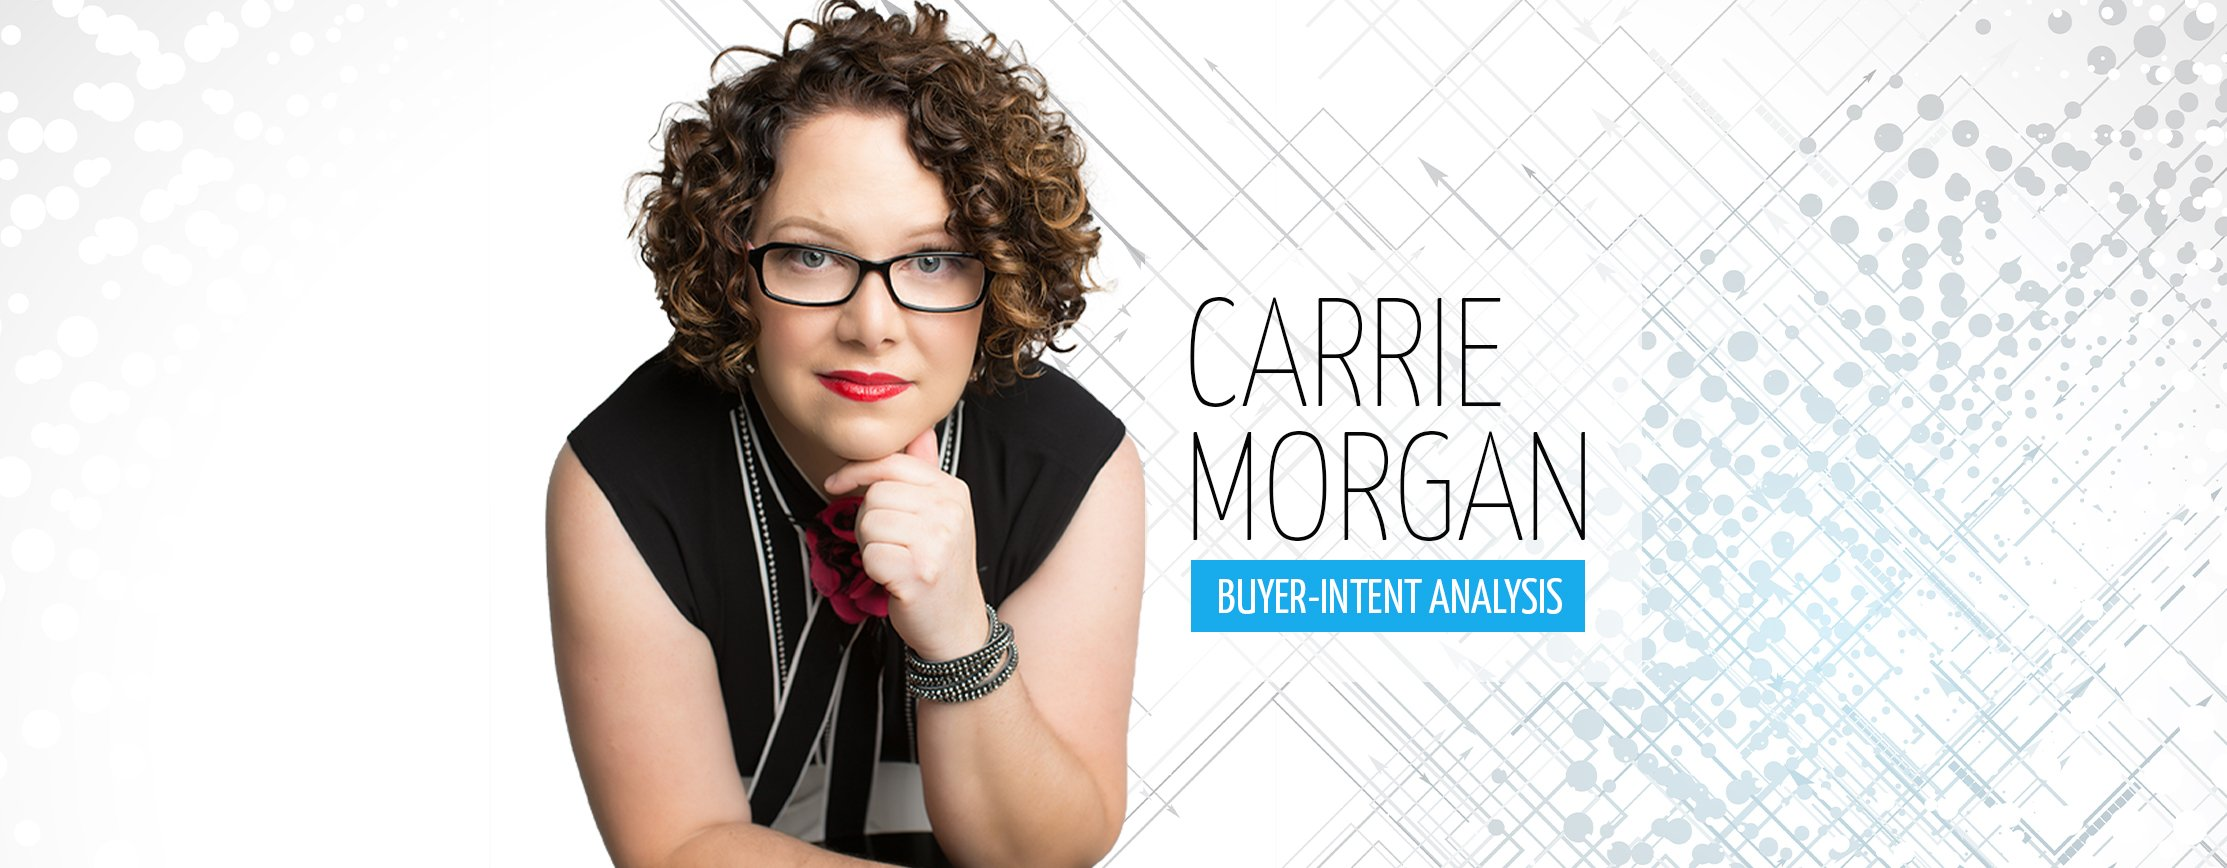 Keyword Analyst Carrie Morgan, consultant, Phoenix Arizona - headshot image